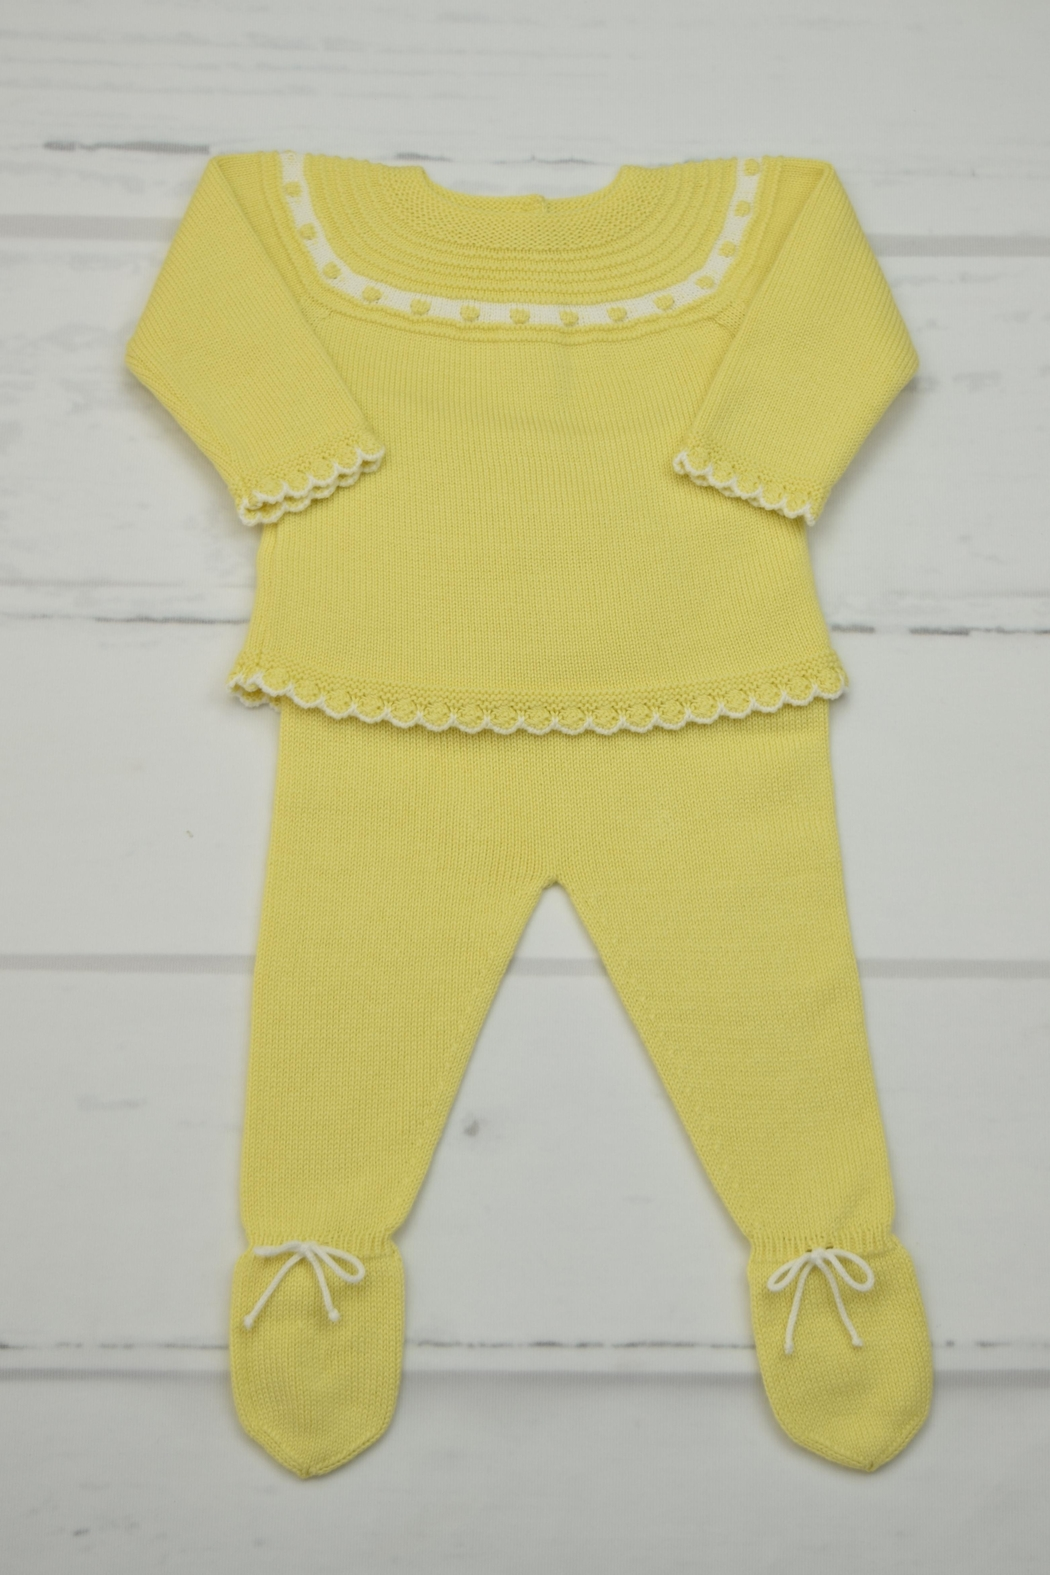 Granlei 1980 Yellow Knitted Outfit - Main Image